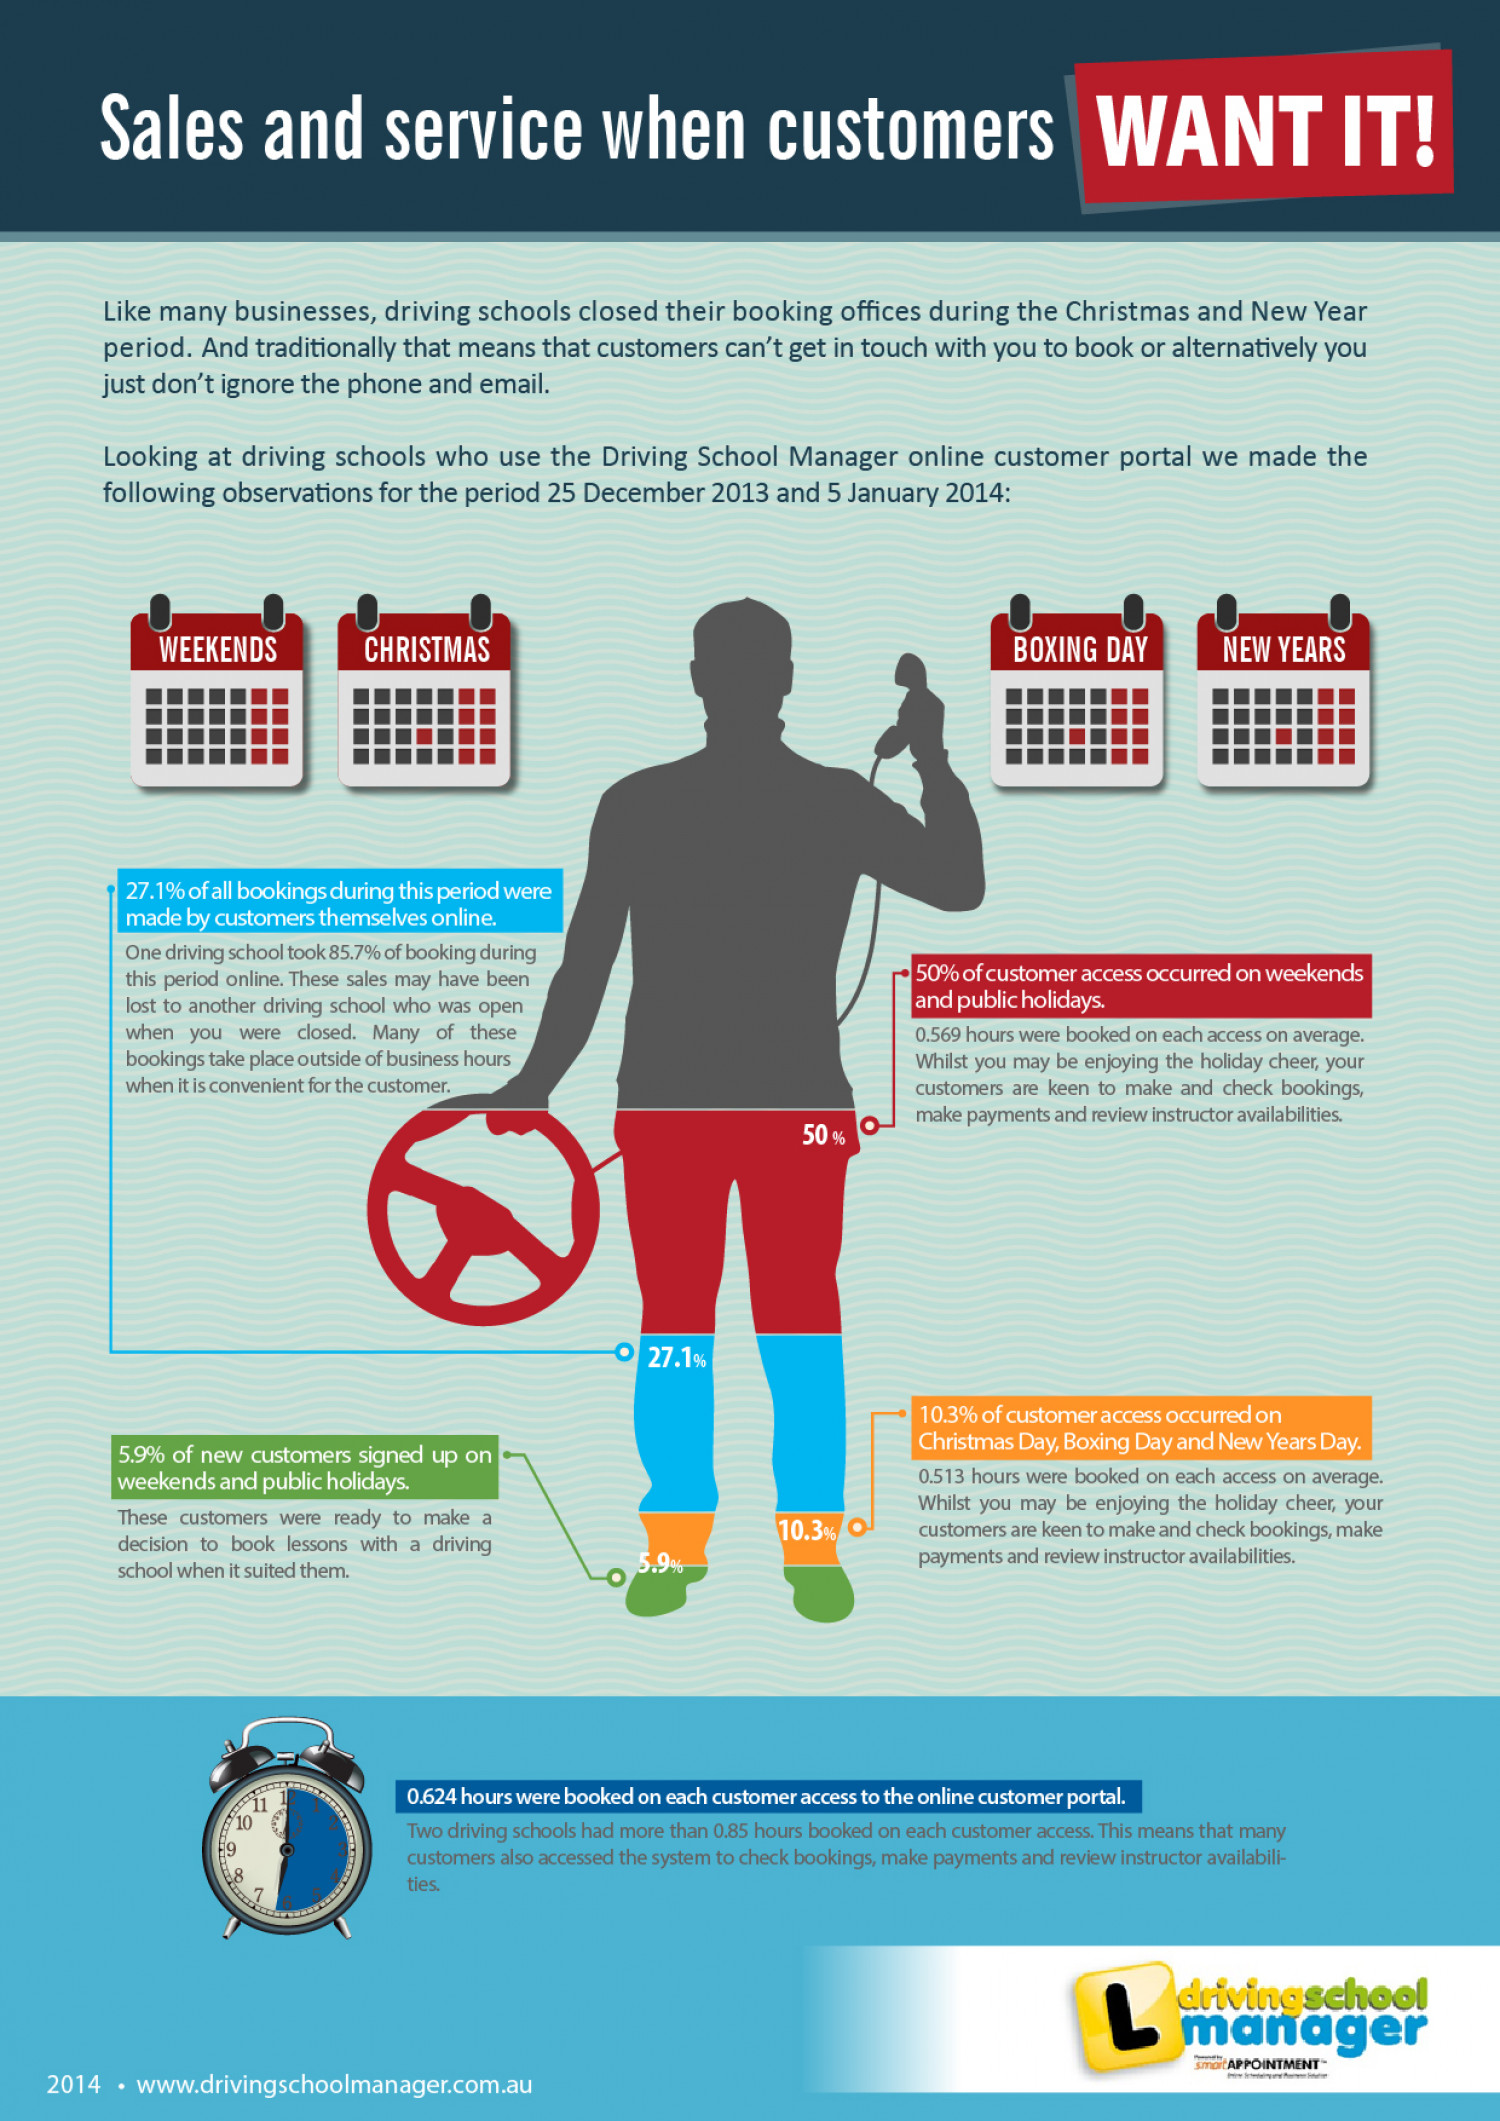 Sales and service, when the customers want it! Infographic